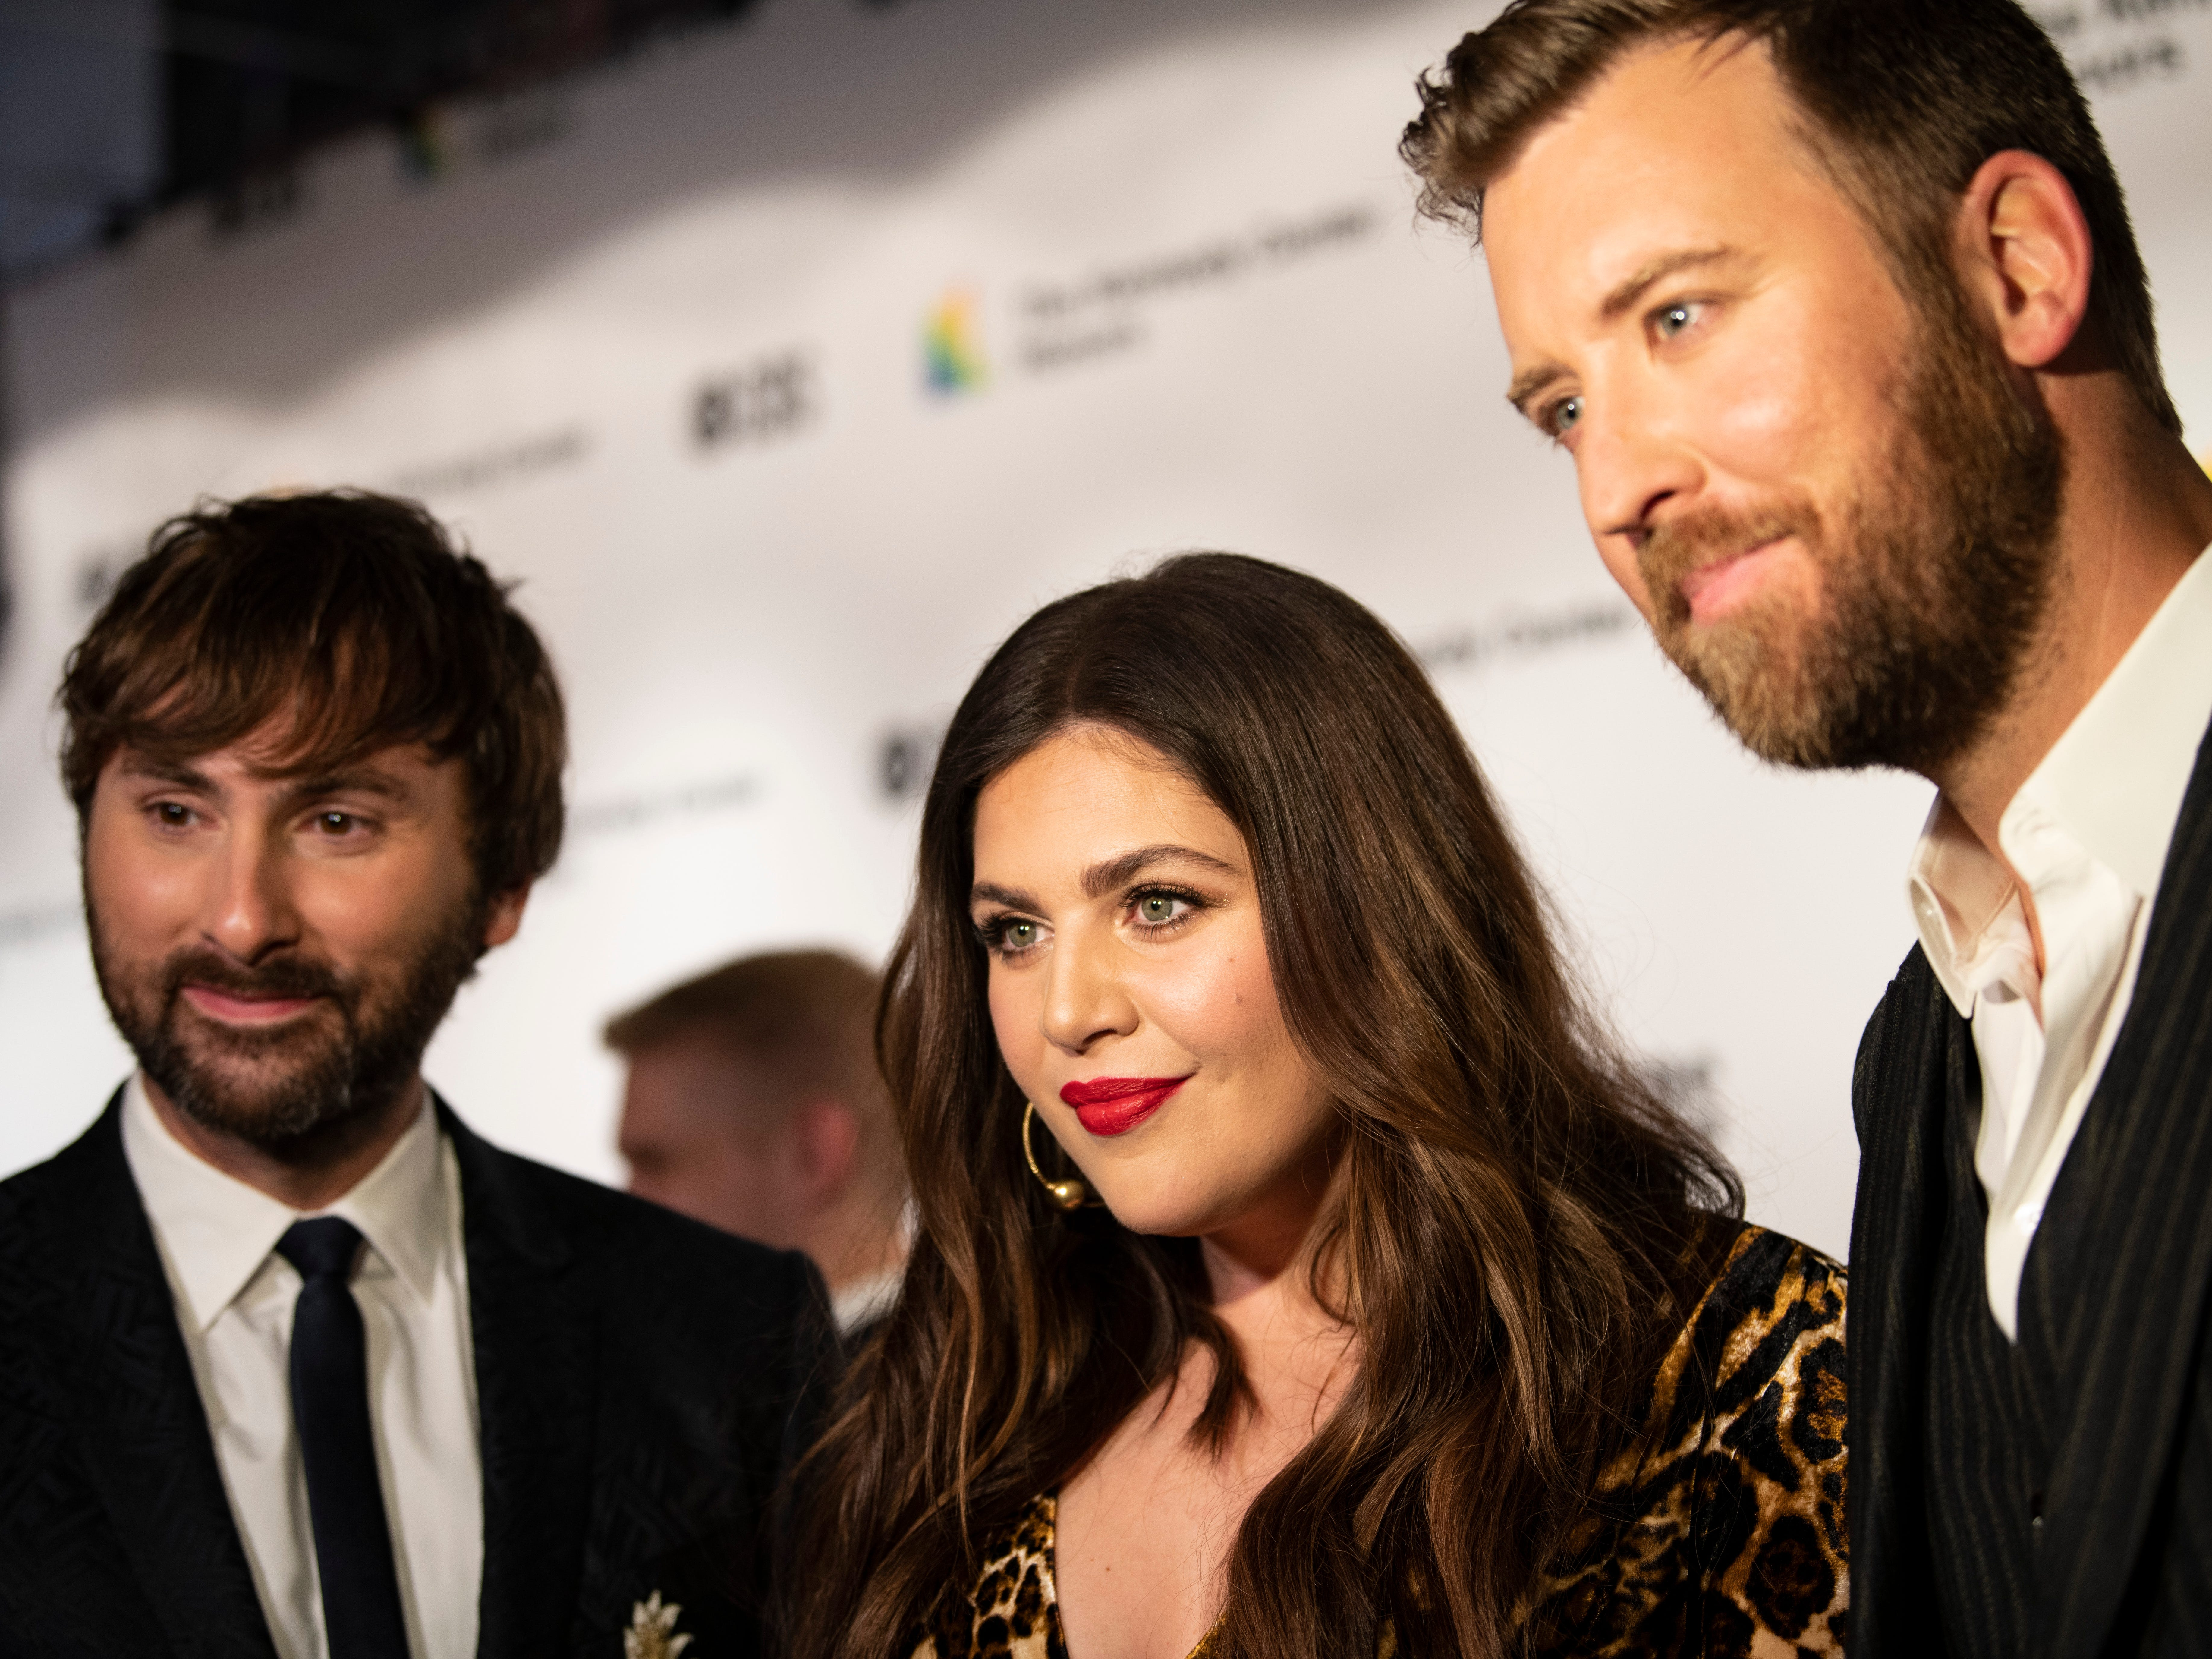 {Dec. 2, 2018} {8:41 p.m.} -- Washington, DC, U.S.A  -- Country music band Lady Antebellum performed to honor recipient Reba McEntire at the 2018 Kennedy Center Honors.  --    Photo by Hannah Gaber, USA TODAY staff ORG XMIT:  HG 137674 Kennedy Center H 12/2/2018 [Via MerlinFTP Drop]